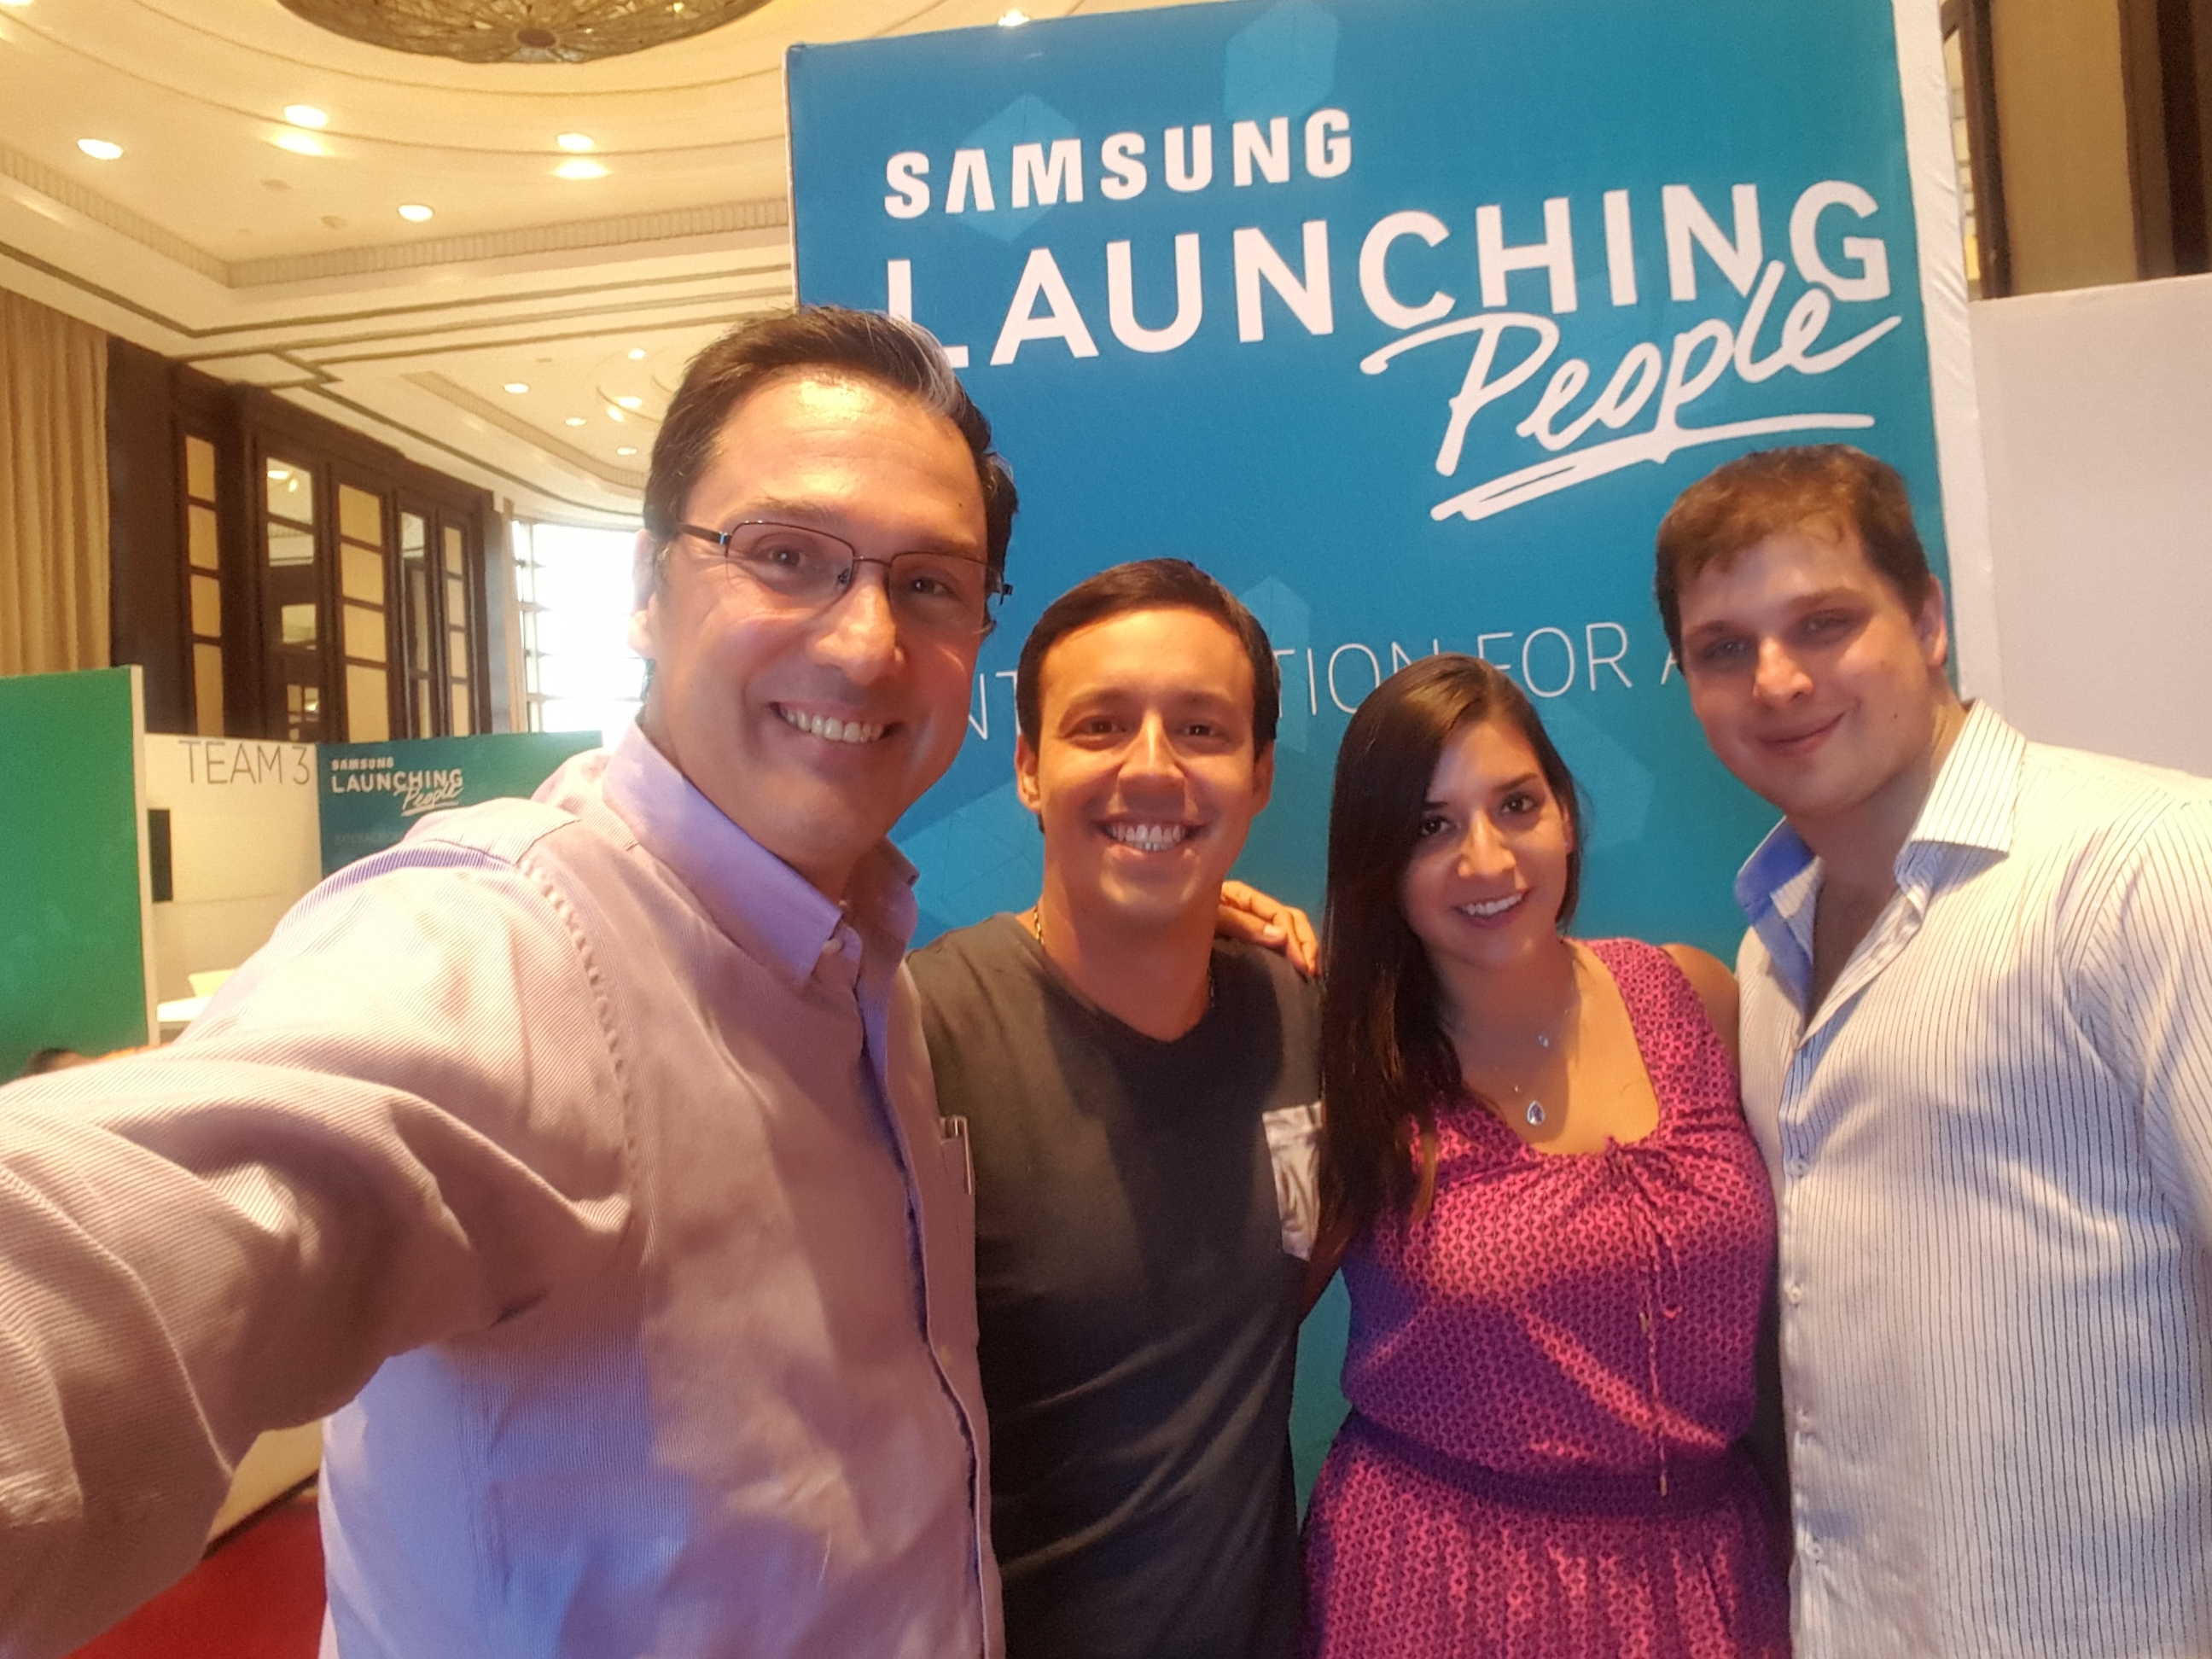 Fotos de jueces del evento Samsung Launching People – Interaction For Action